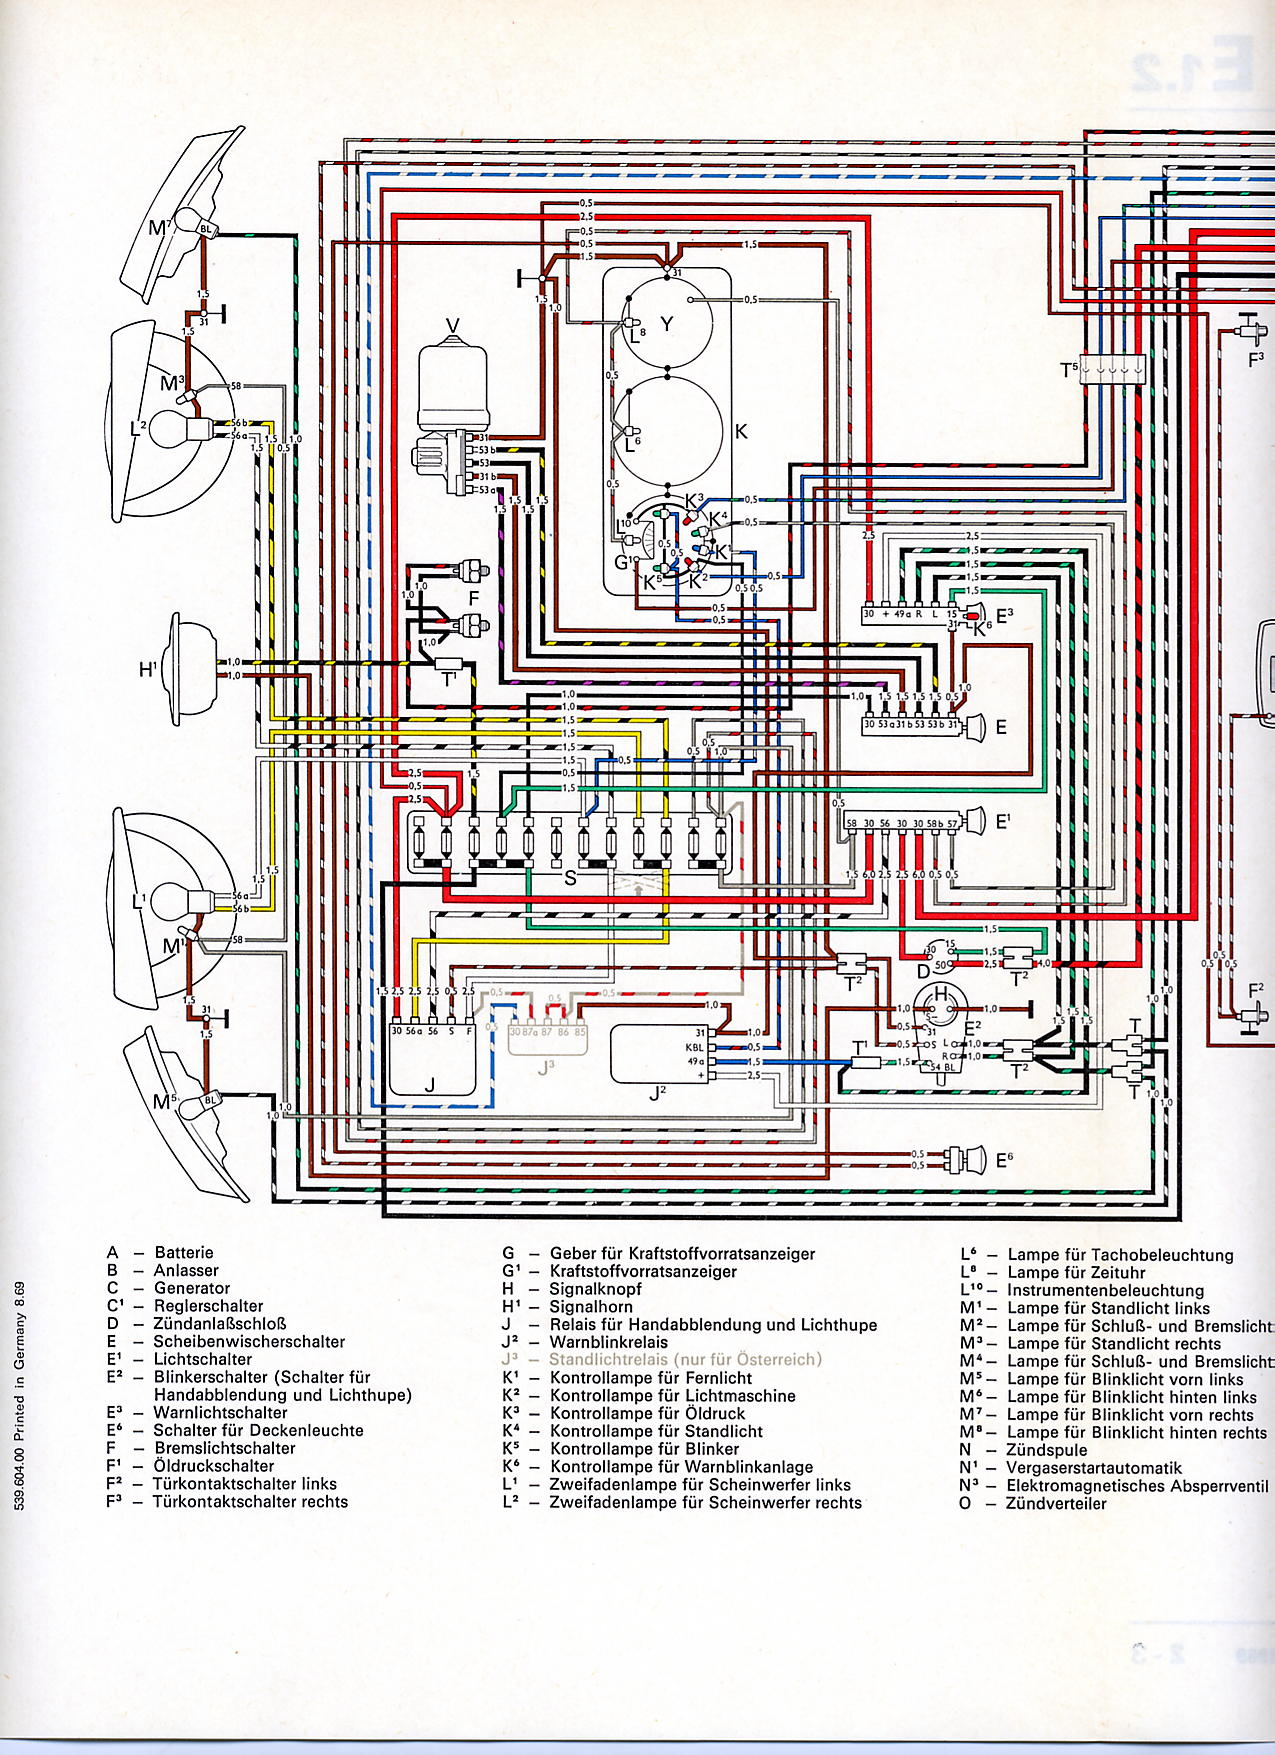 Vw T4 Brake Light Wiring Diagram Best Library Diagramquot On The Left And Of Six Way 4 Pole Rotary De Y 1 2 Vintagebus